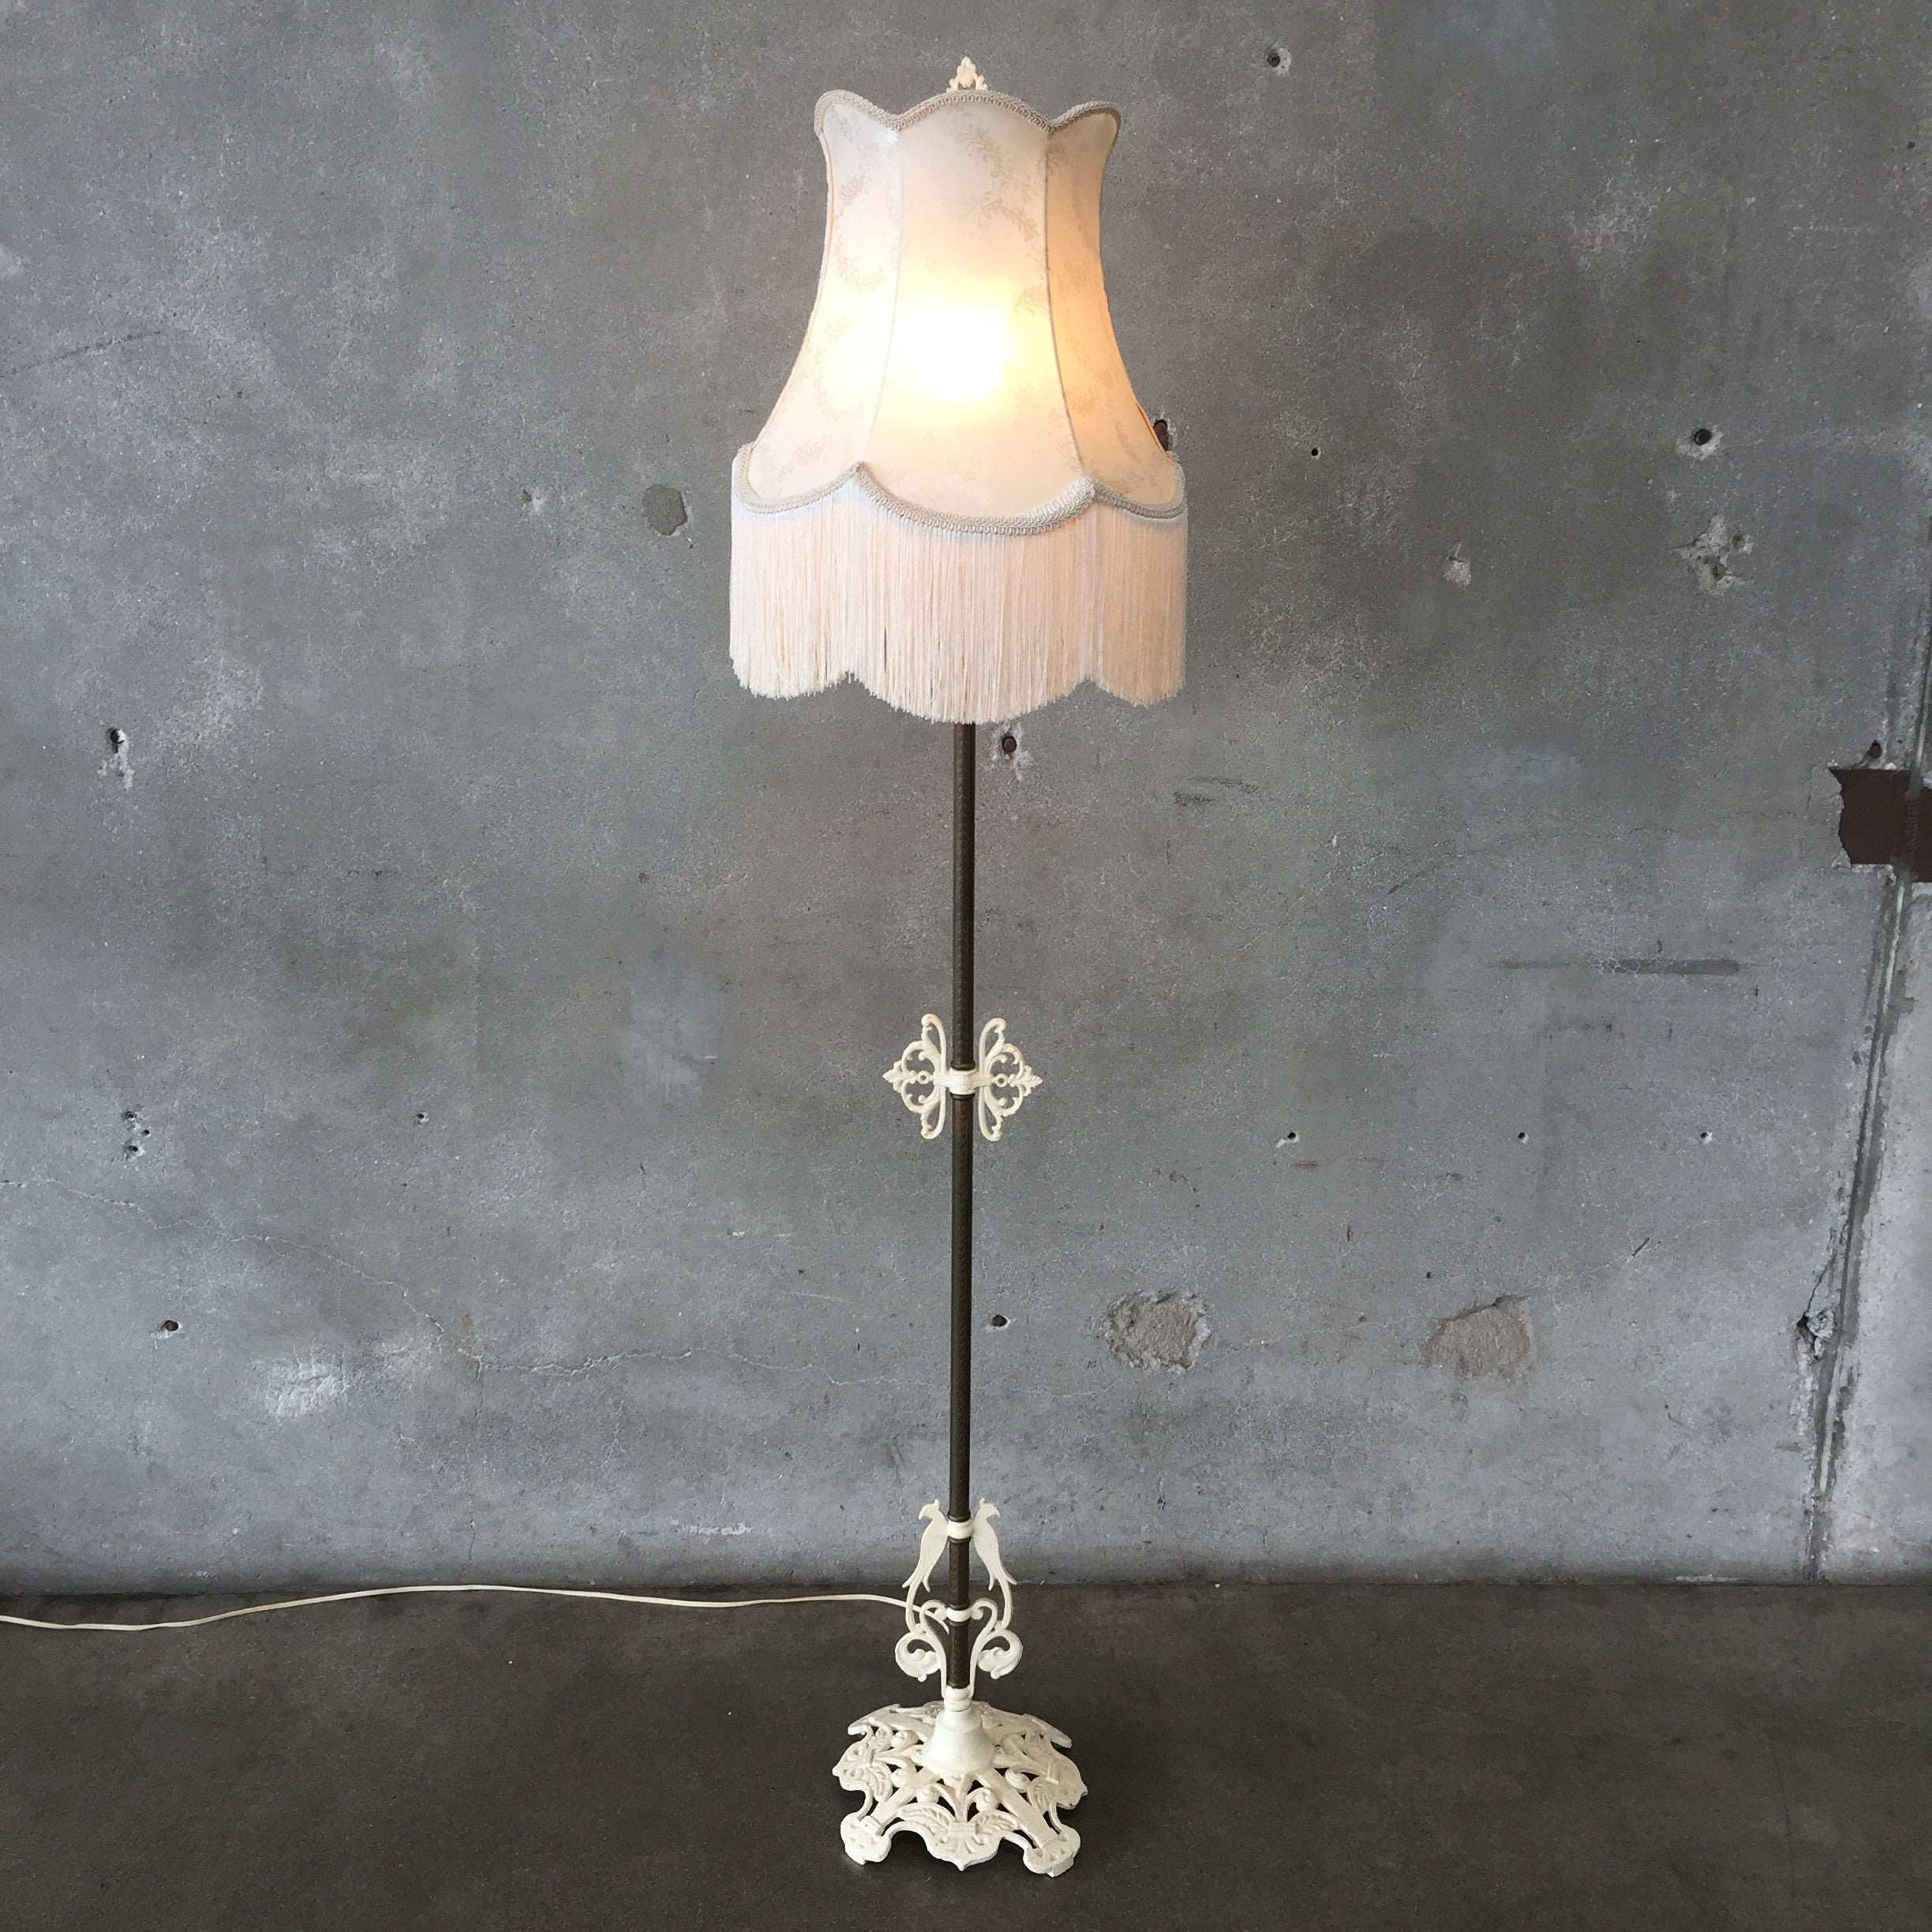 French vintage floor lamp with fringe shade urbanamericana for Antique floor lamp with fringed shade